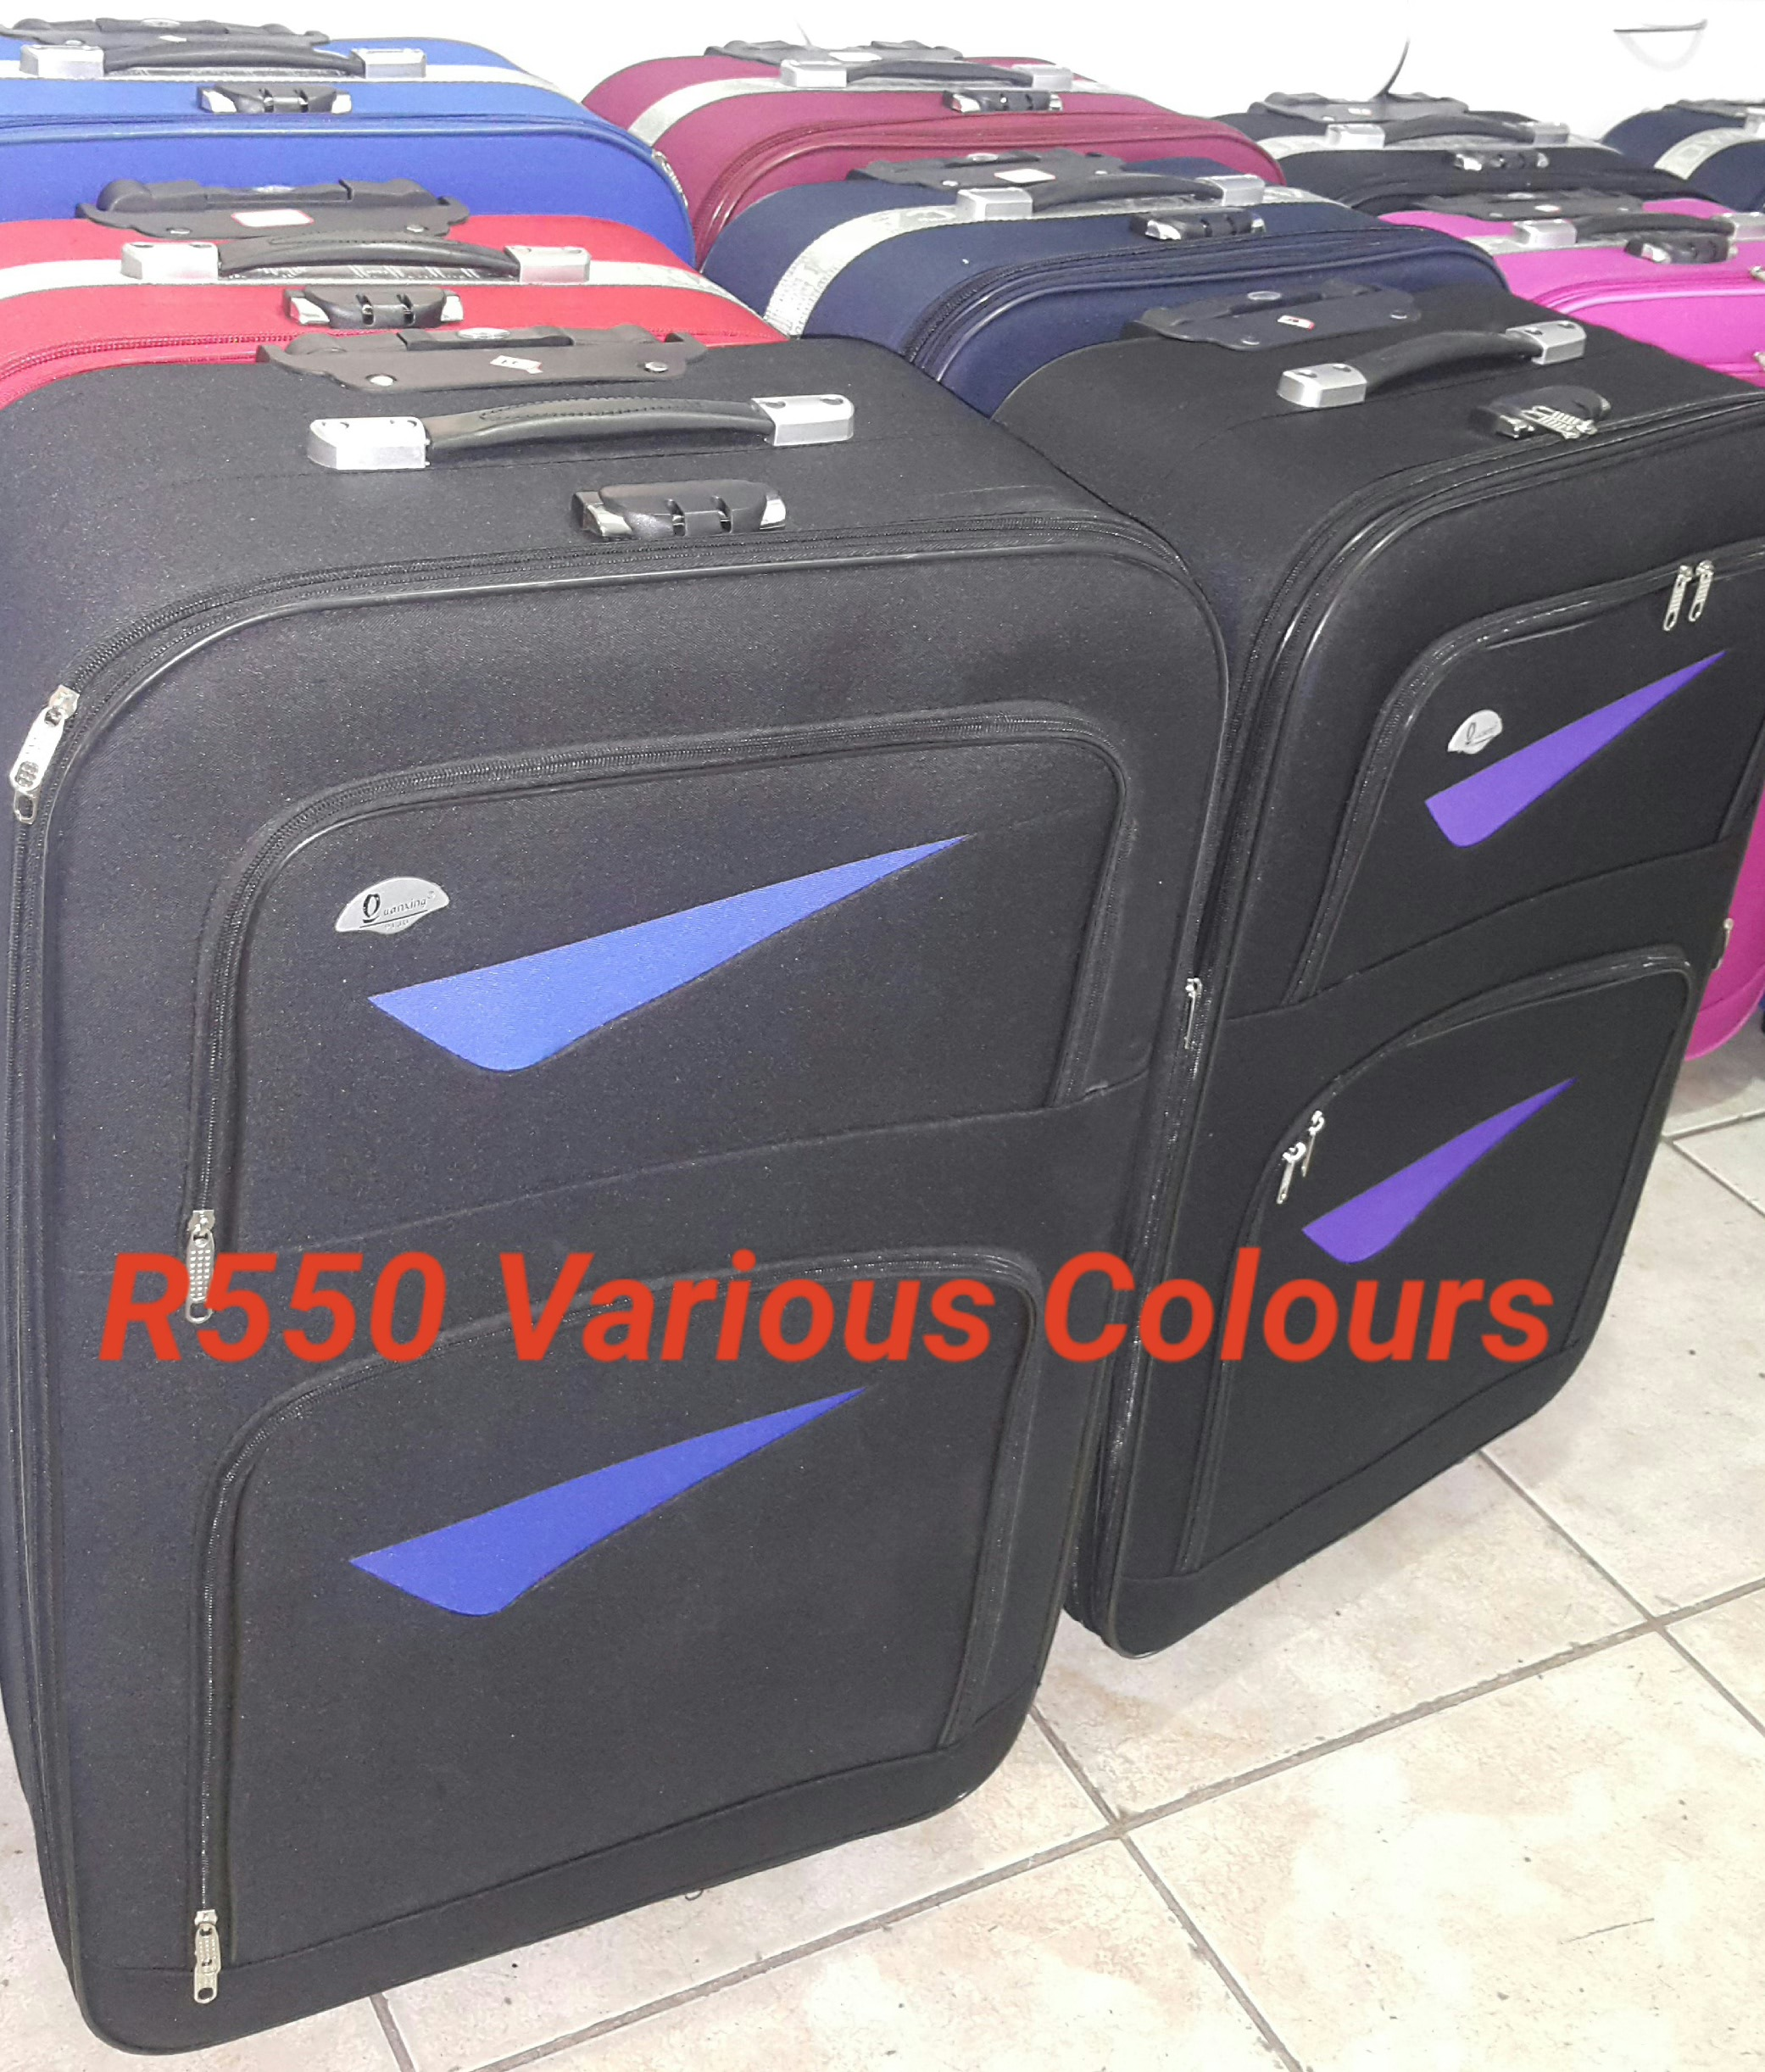 Various Colours in our R550 Luggage Bag Set for 3 Bags